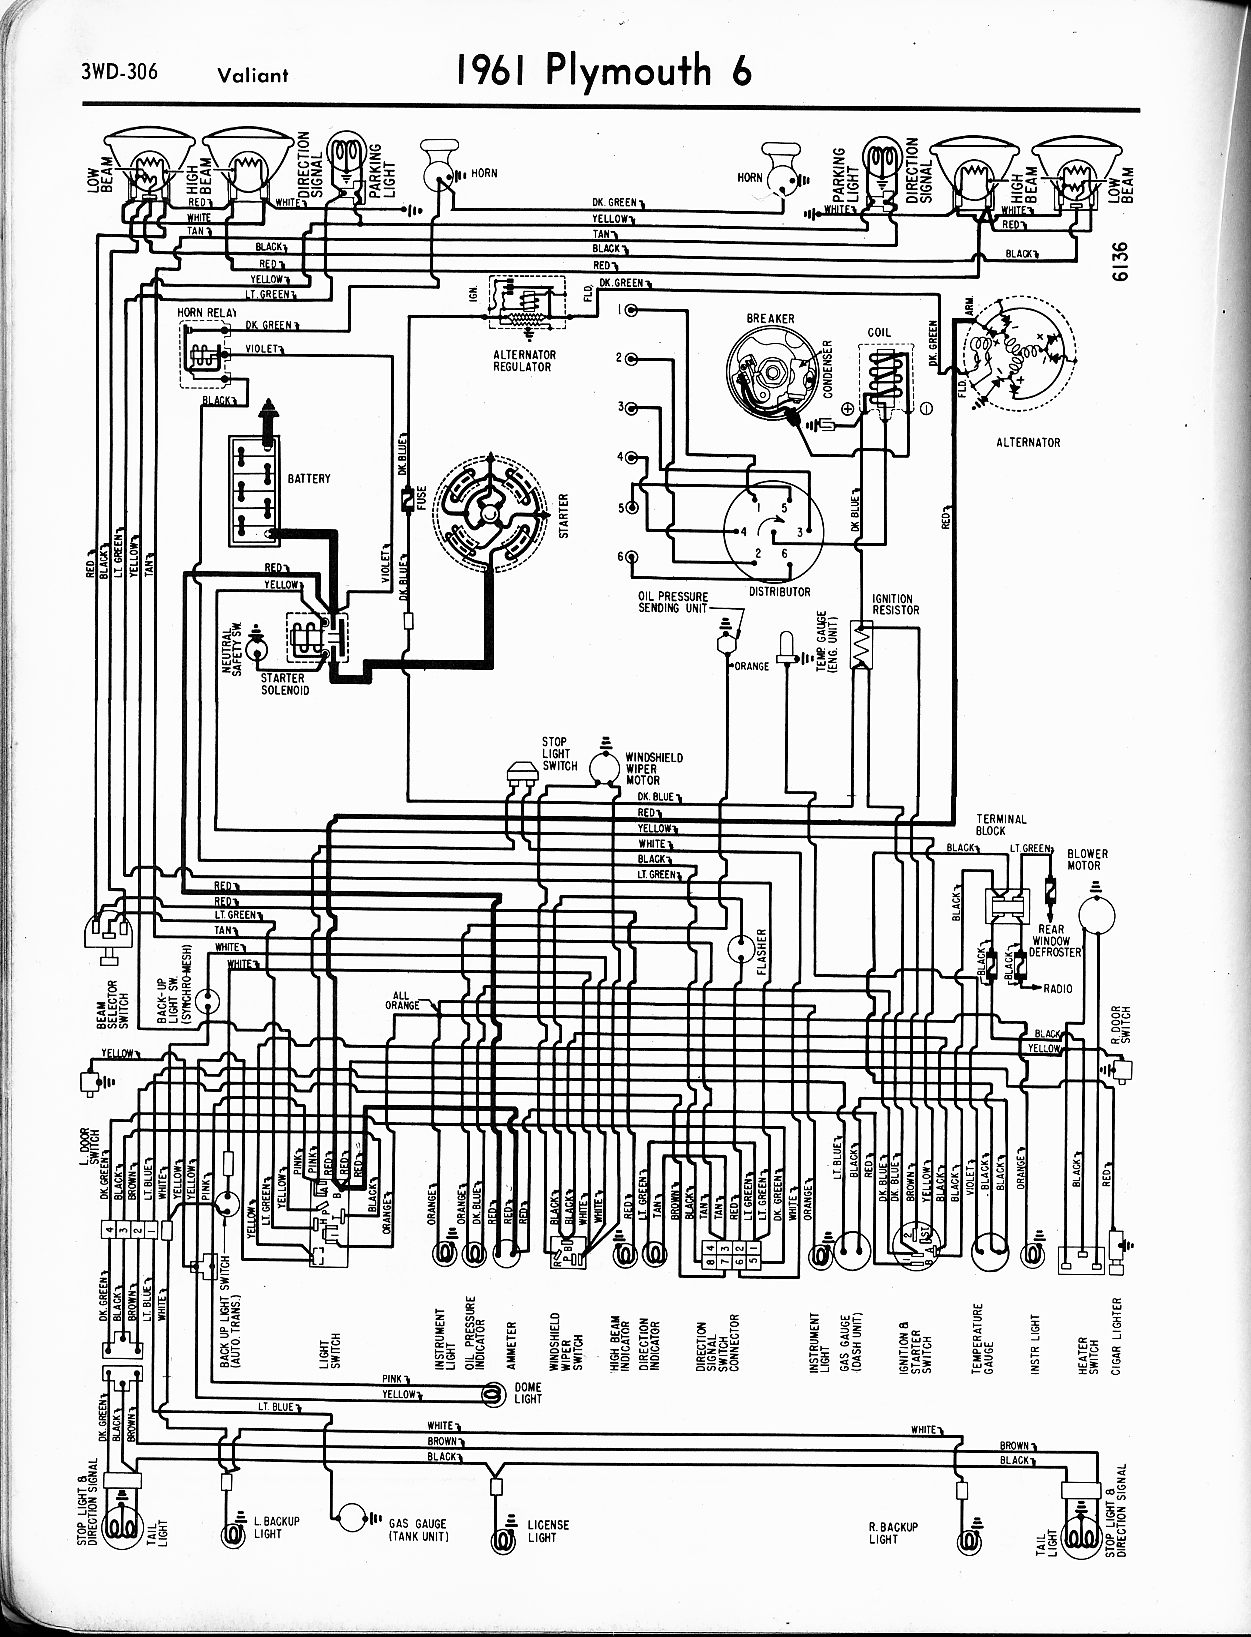 1967 barracuda engine wiring diagram 1967 barracuda engine wiring diagram | better wiring ... #12